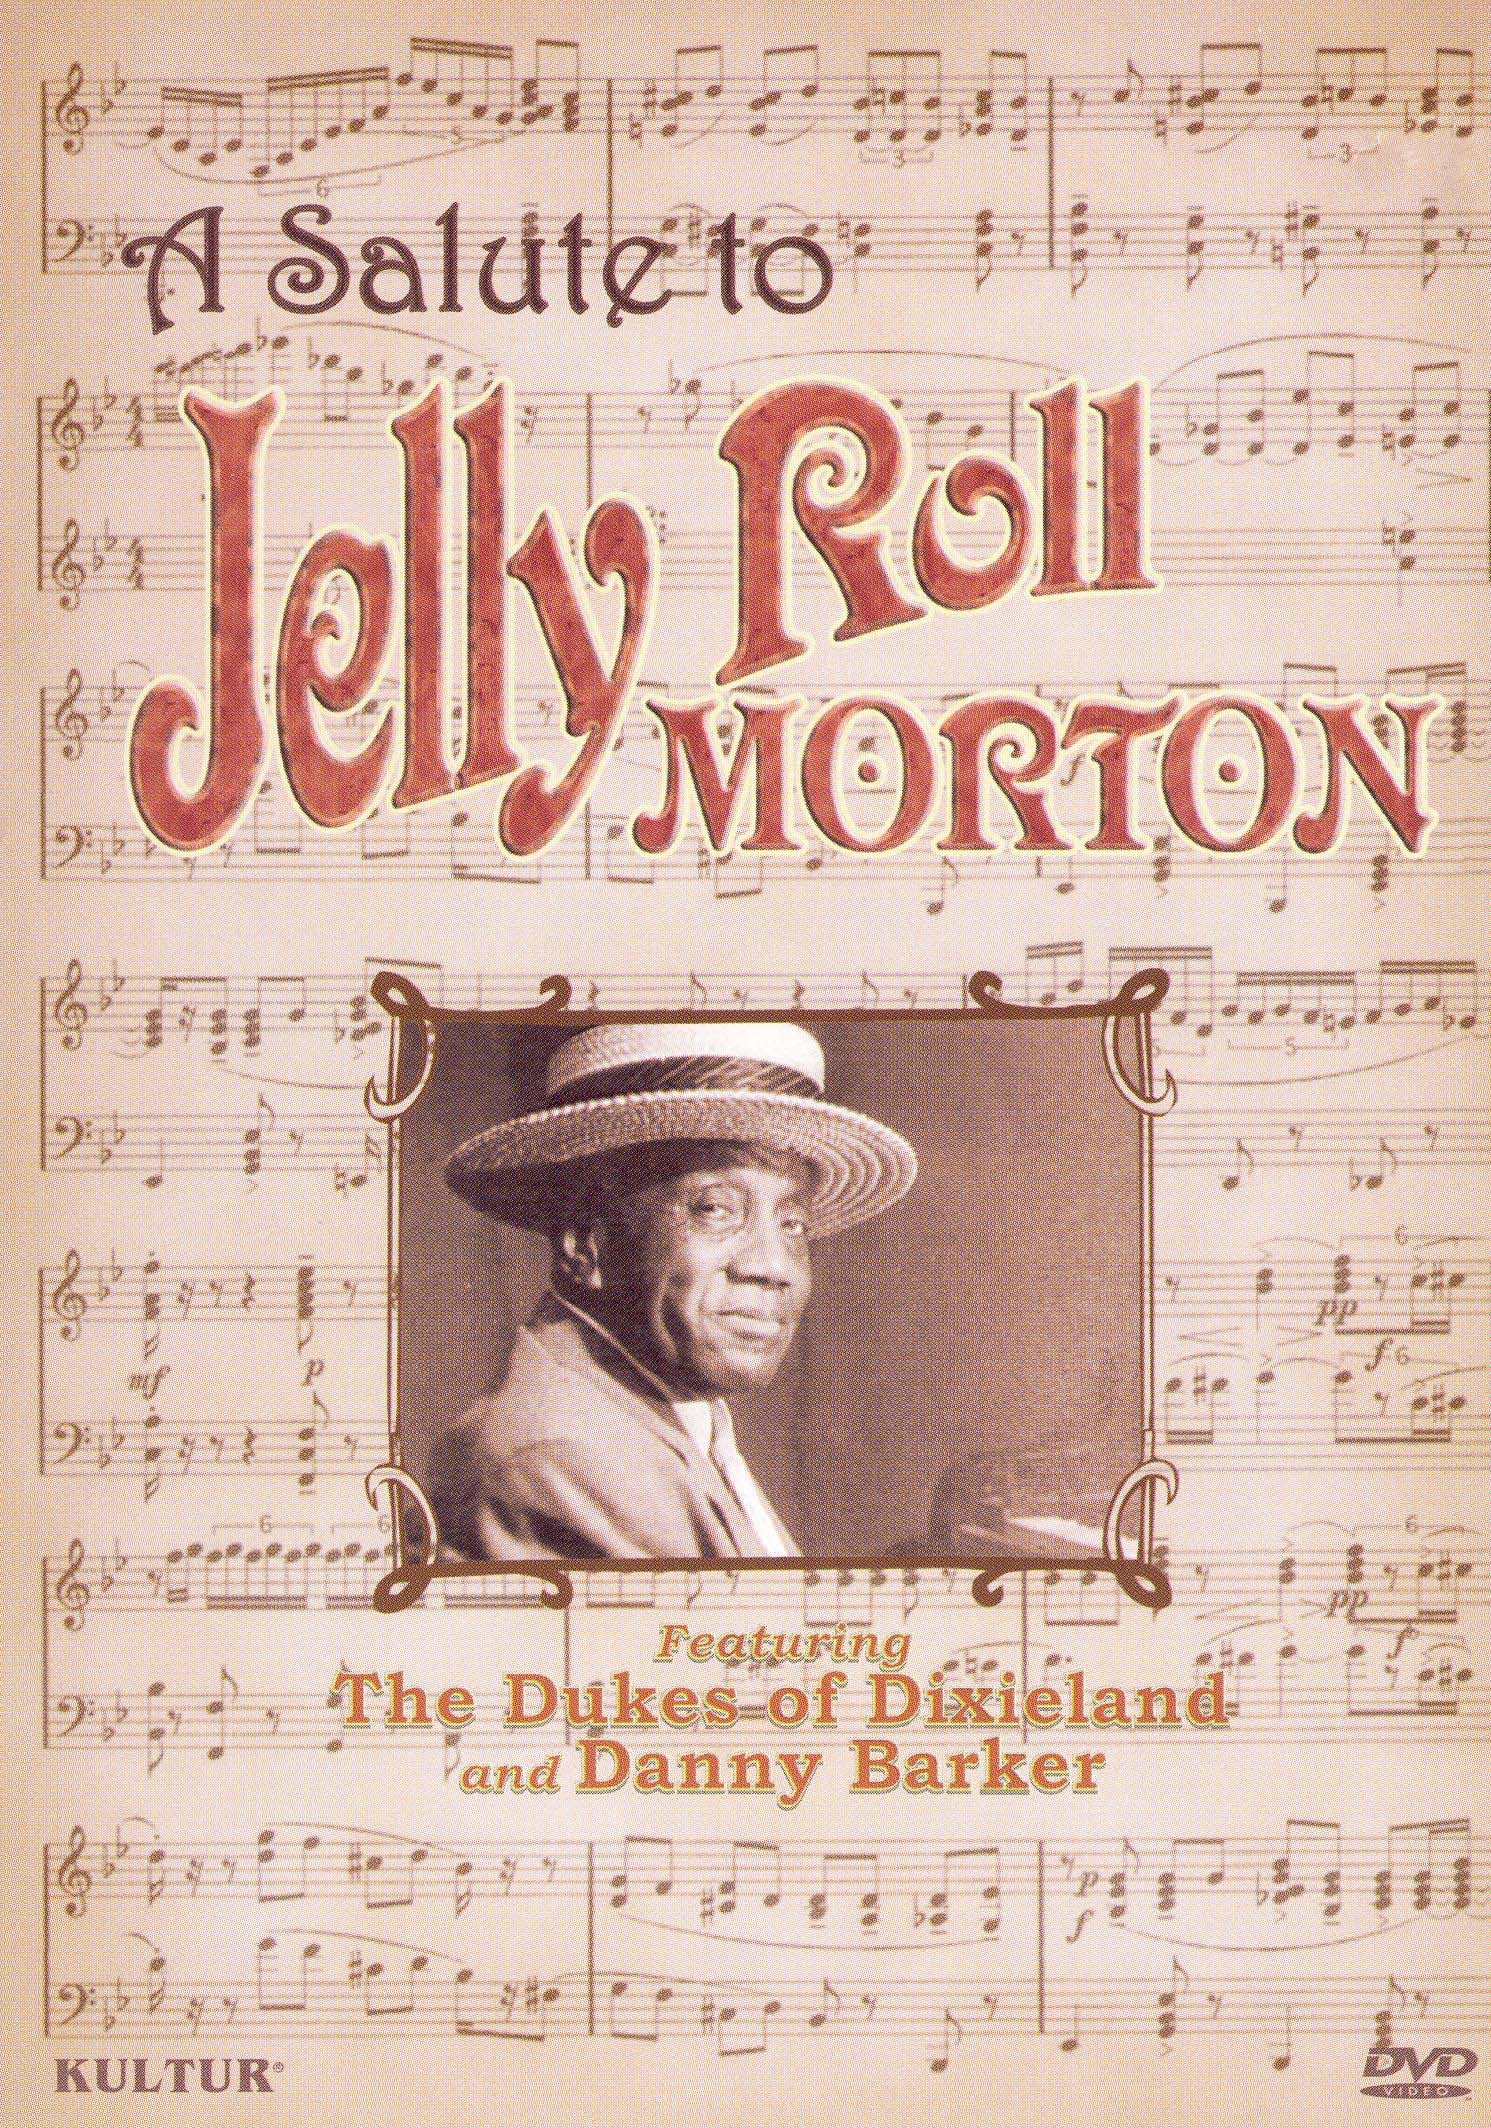 The Dukes of Dixieland: Tribute to Jelly Roll Morton